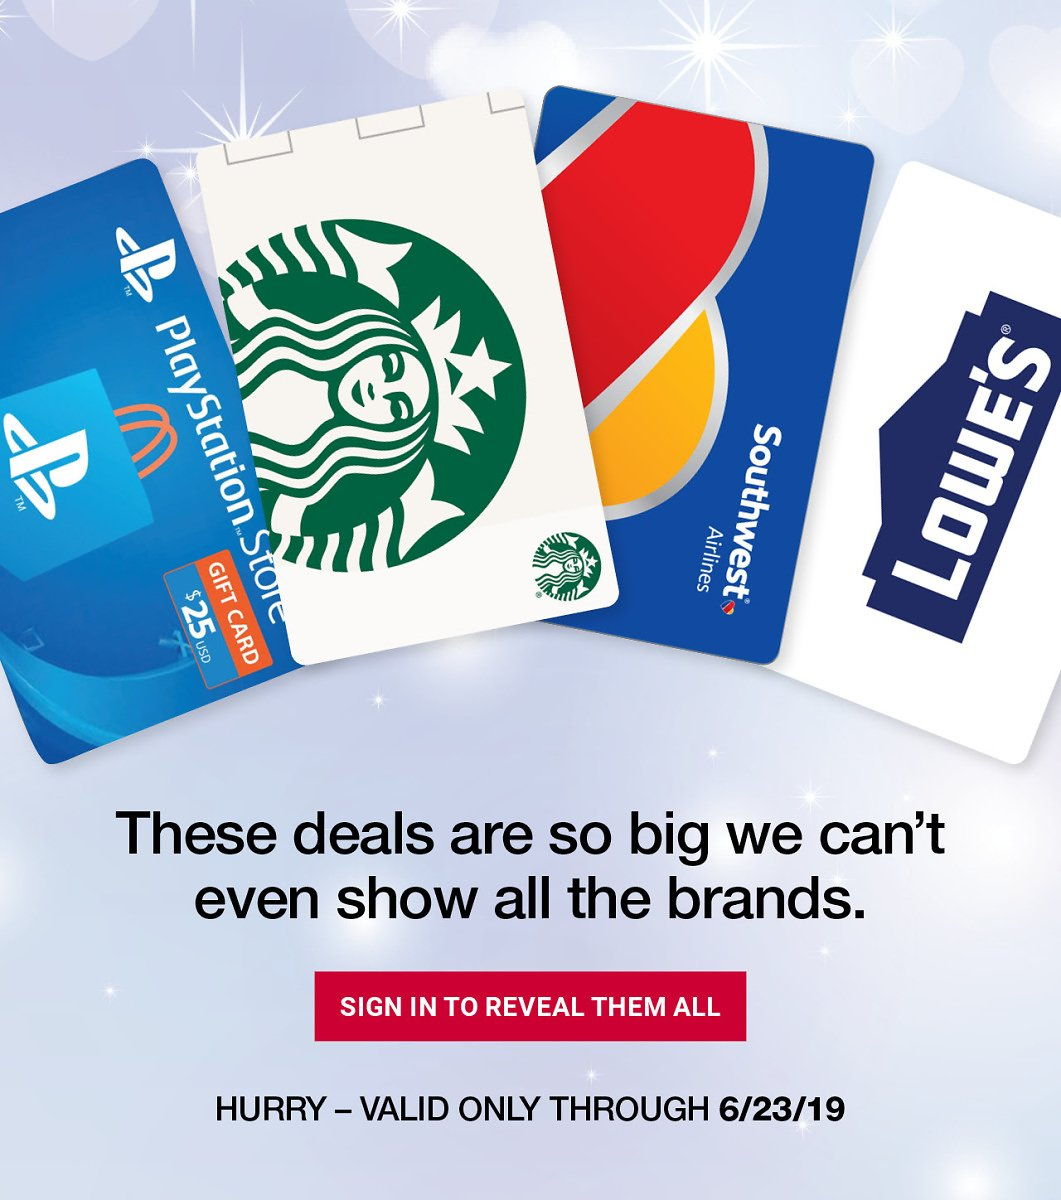 Save Up to 20% Off Your Favorite Brand Gift Cards - BJ's Wholesale Club